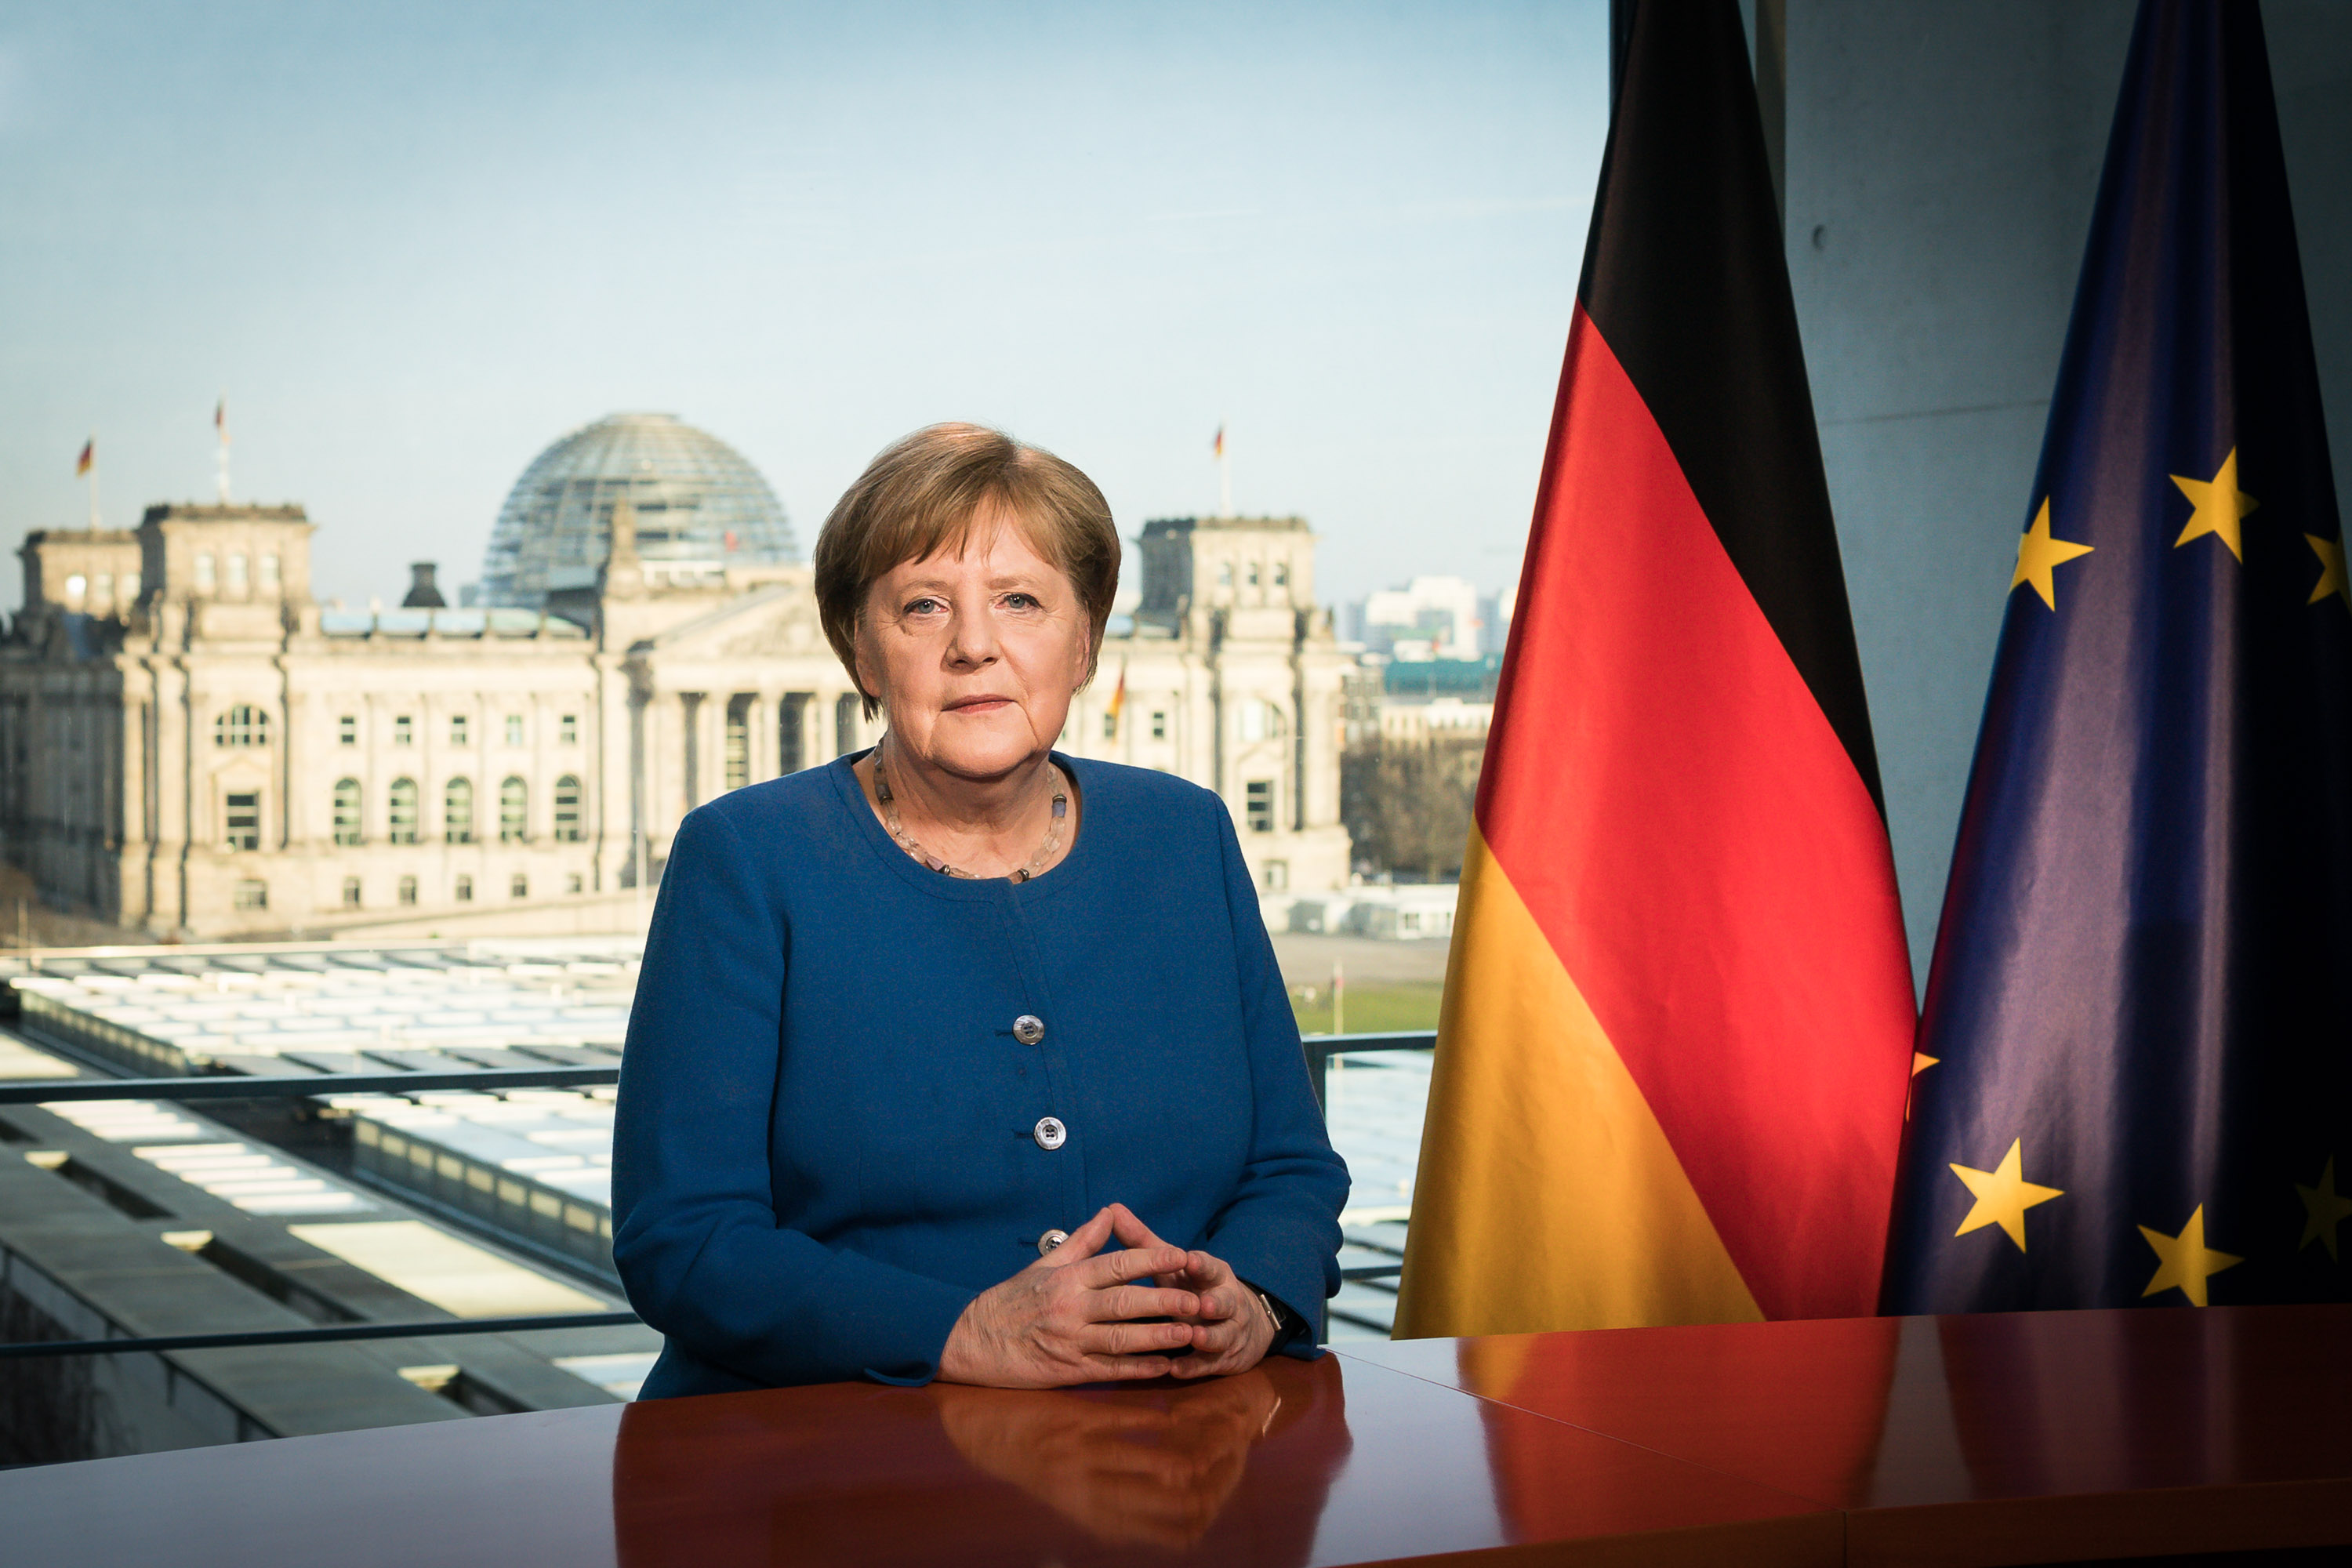 German Chancellor Angela Merkel addresses the nation via a video statement about the ongoing Covid-19 pandemic on March 18, 2020 in Berlin, Germany.